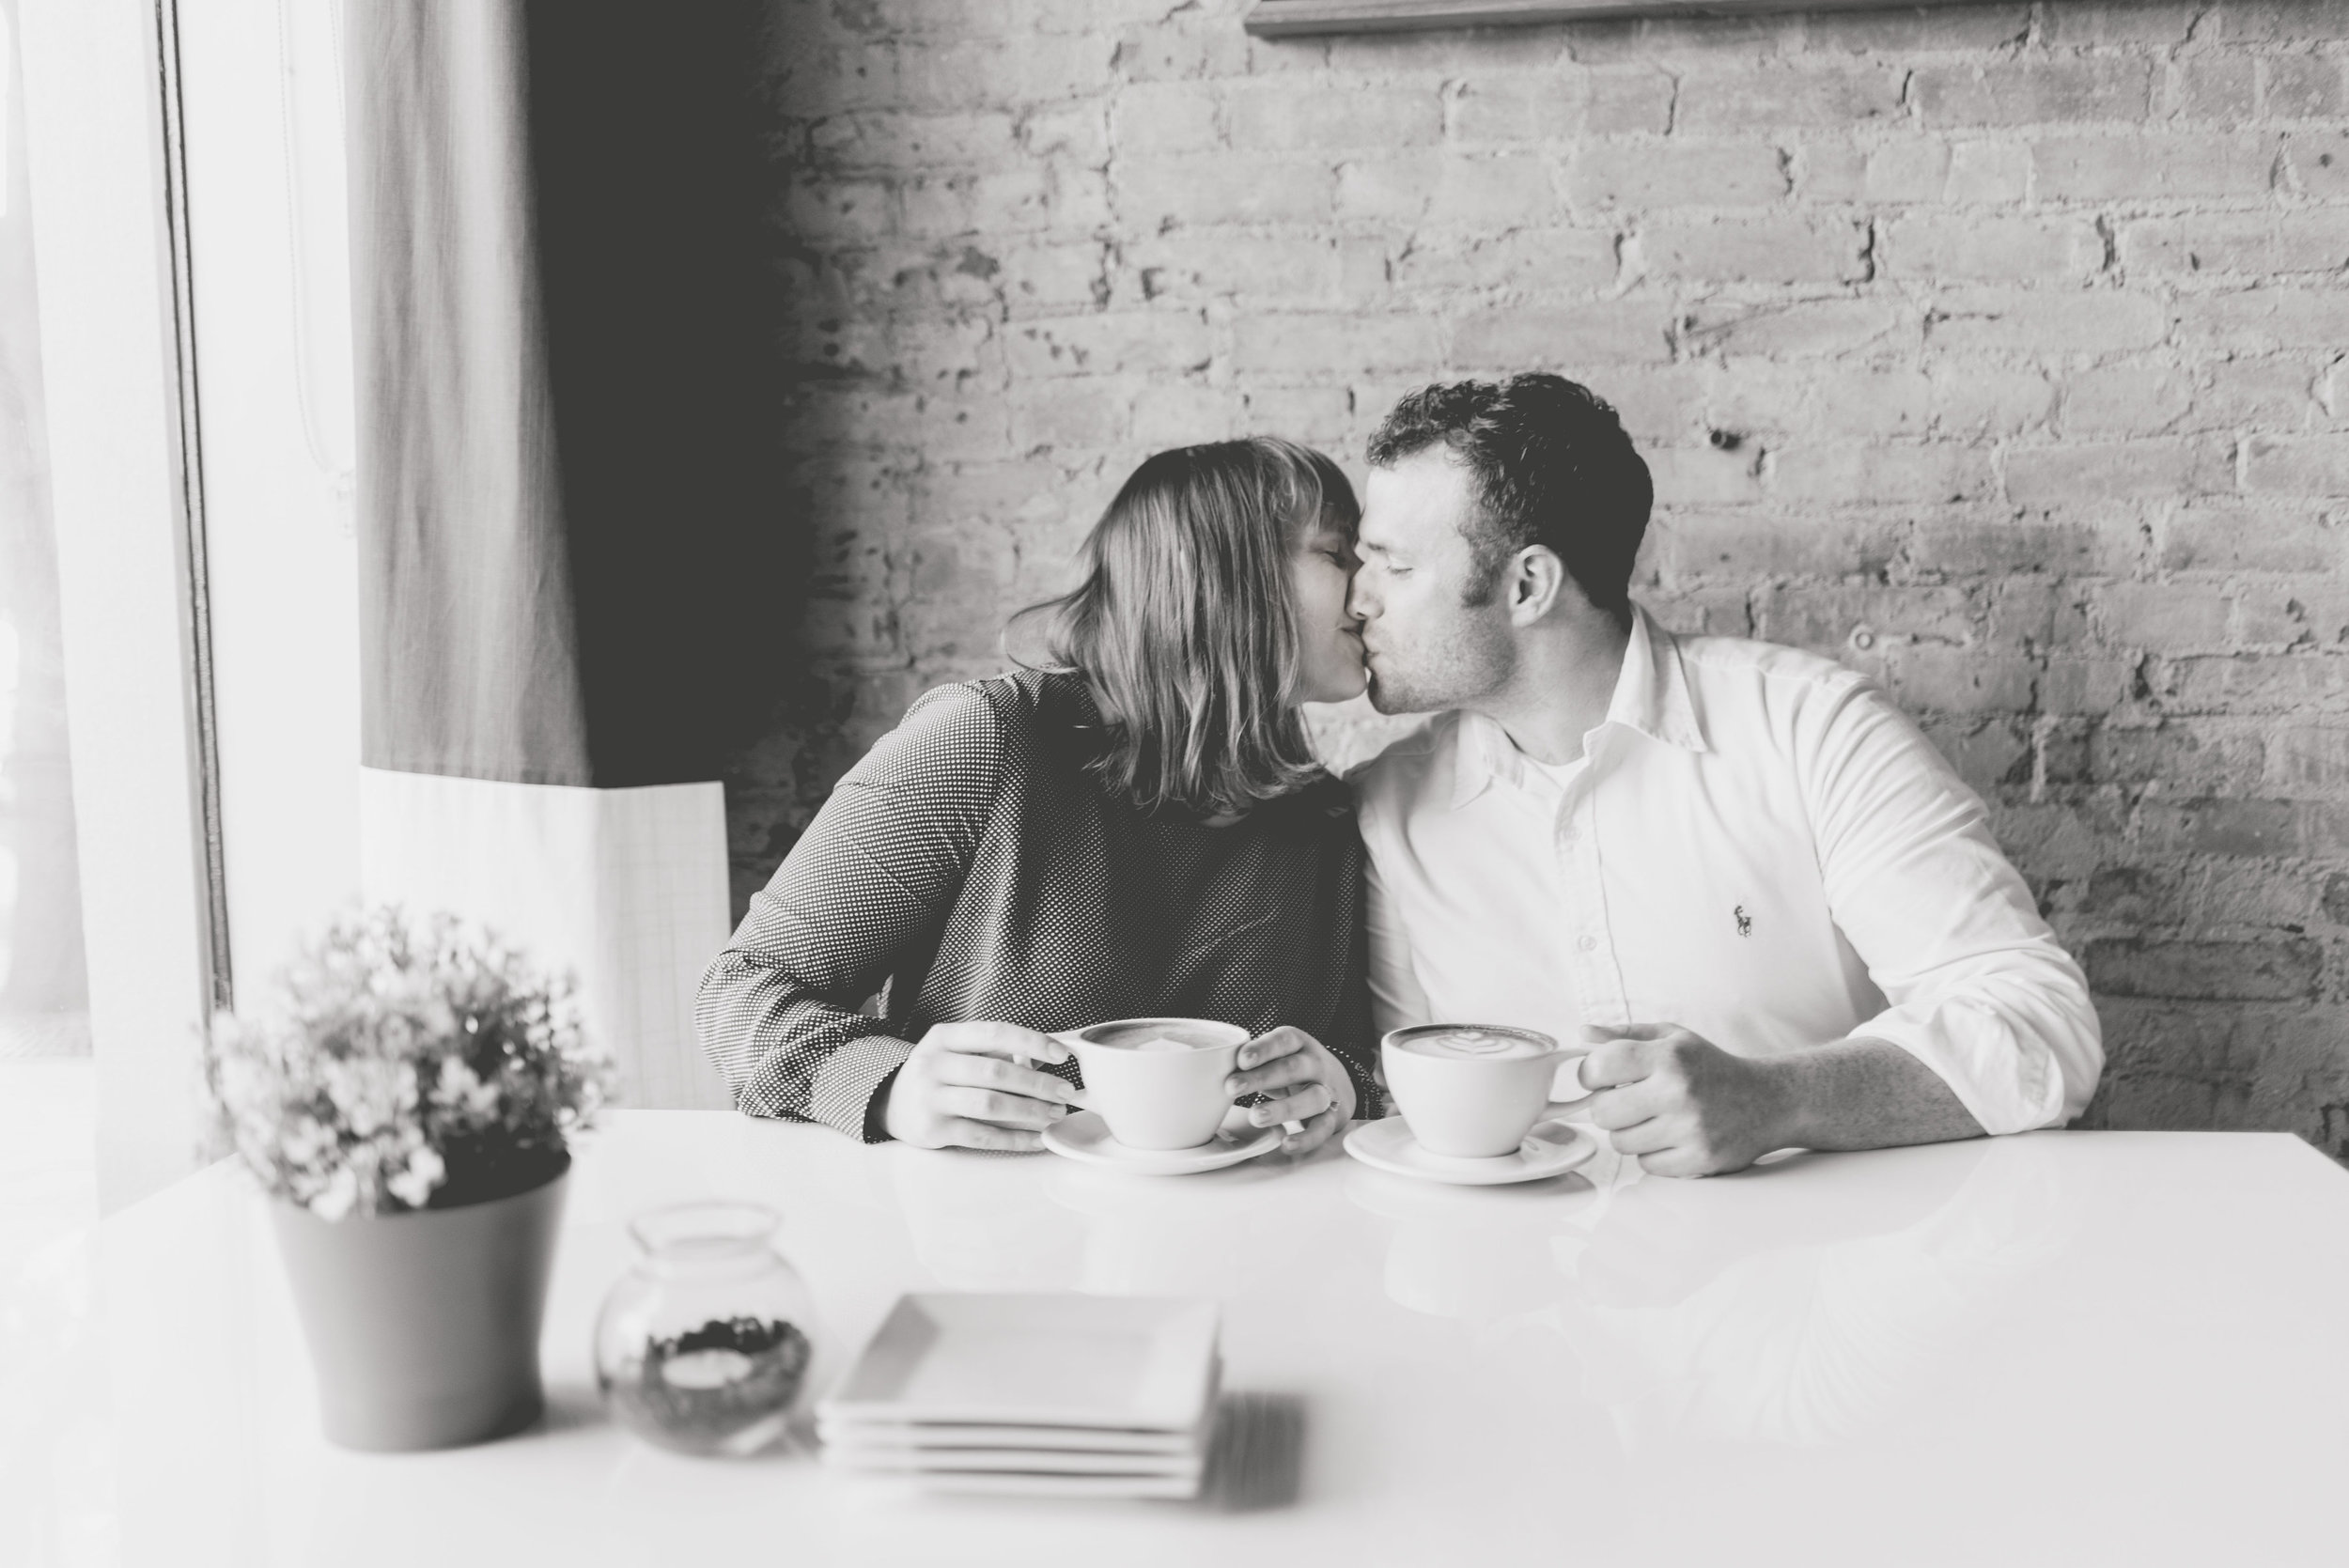 gray-door-photography-engagement-coffee-shop-dallas-north-texas-wedding-photographer5.jpg